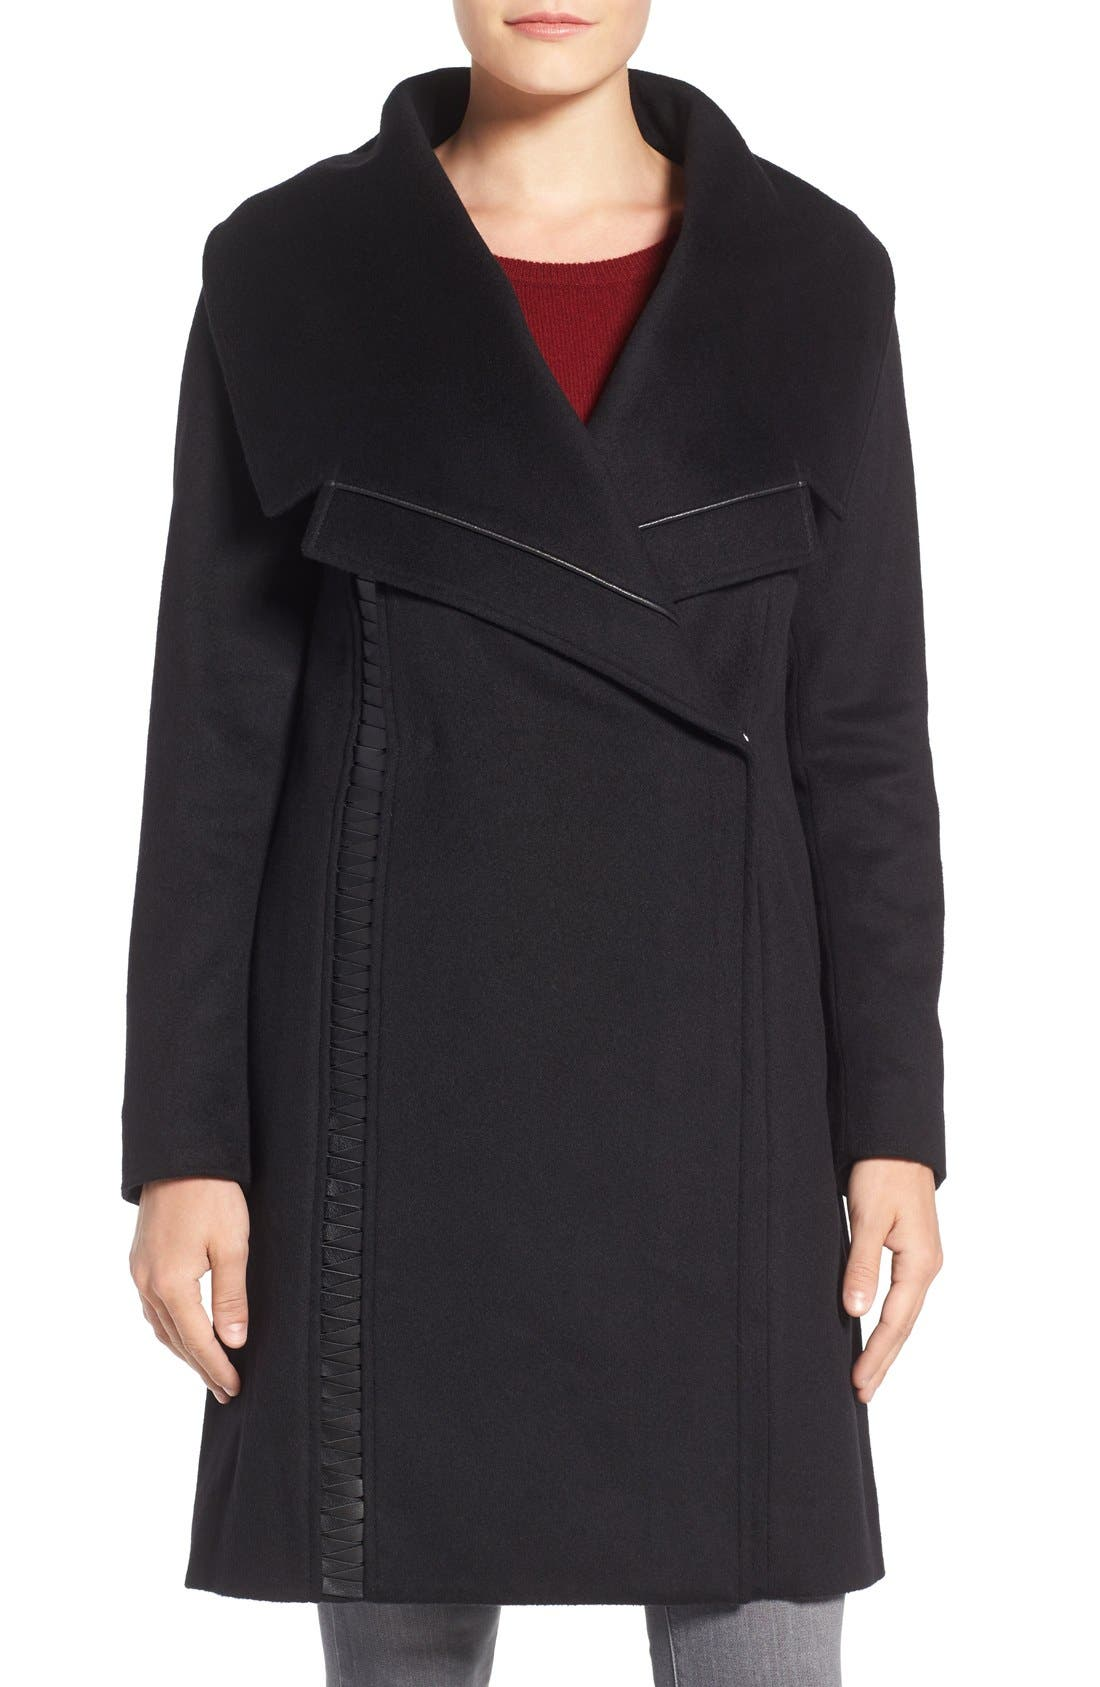 Badgley Mischka Womens Nikki Mid Length Italian Cashmere Wool Coat with Leather Braiding